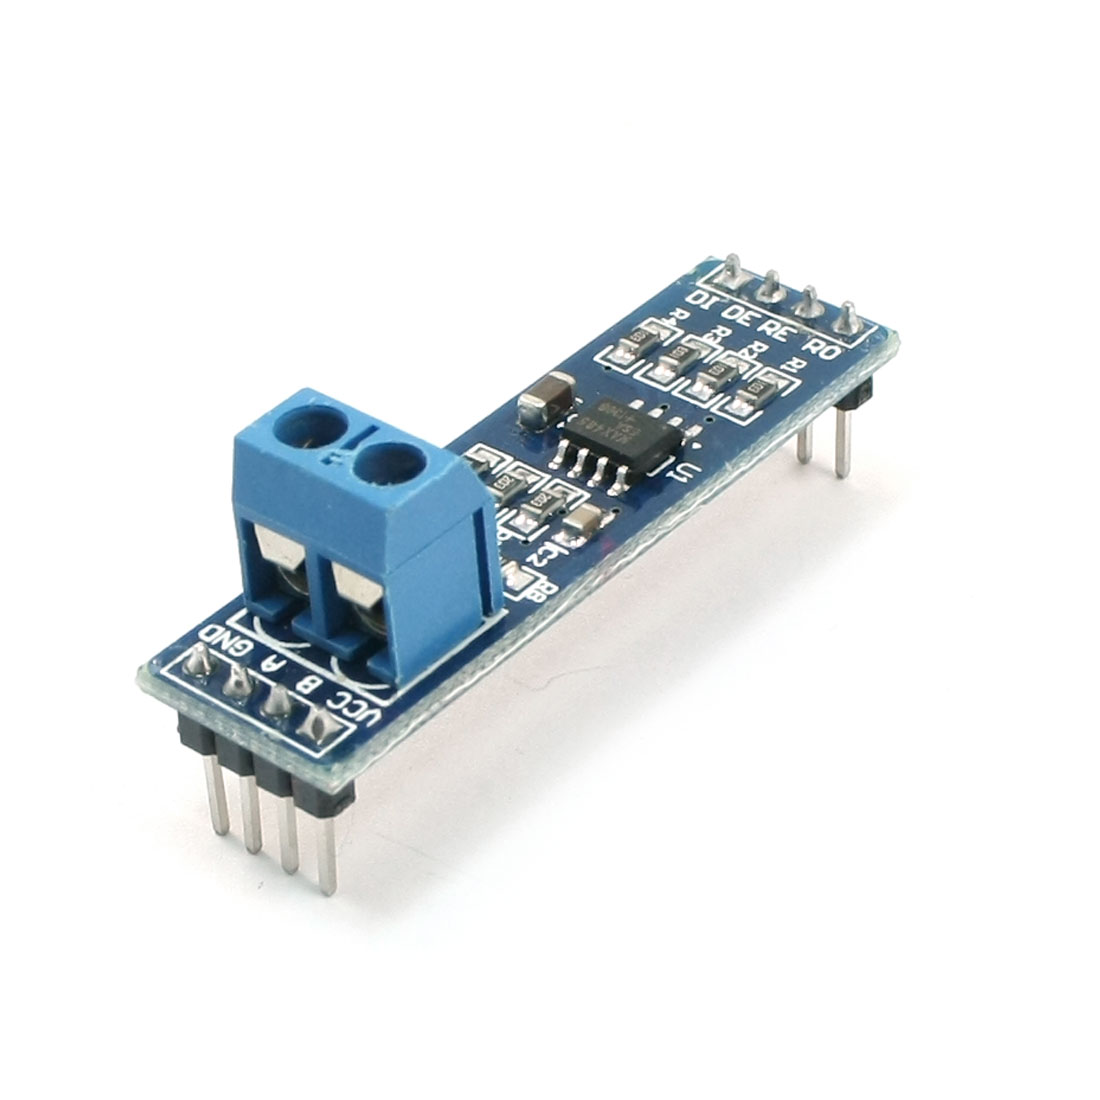 5V MAX485 TTL to RS485 Module for Singlechip Microcomputer